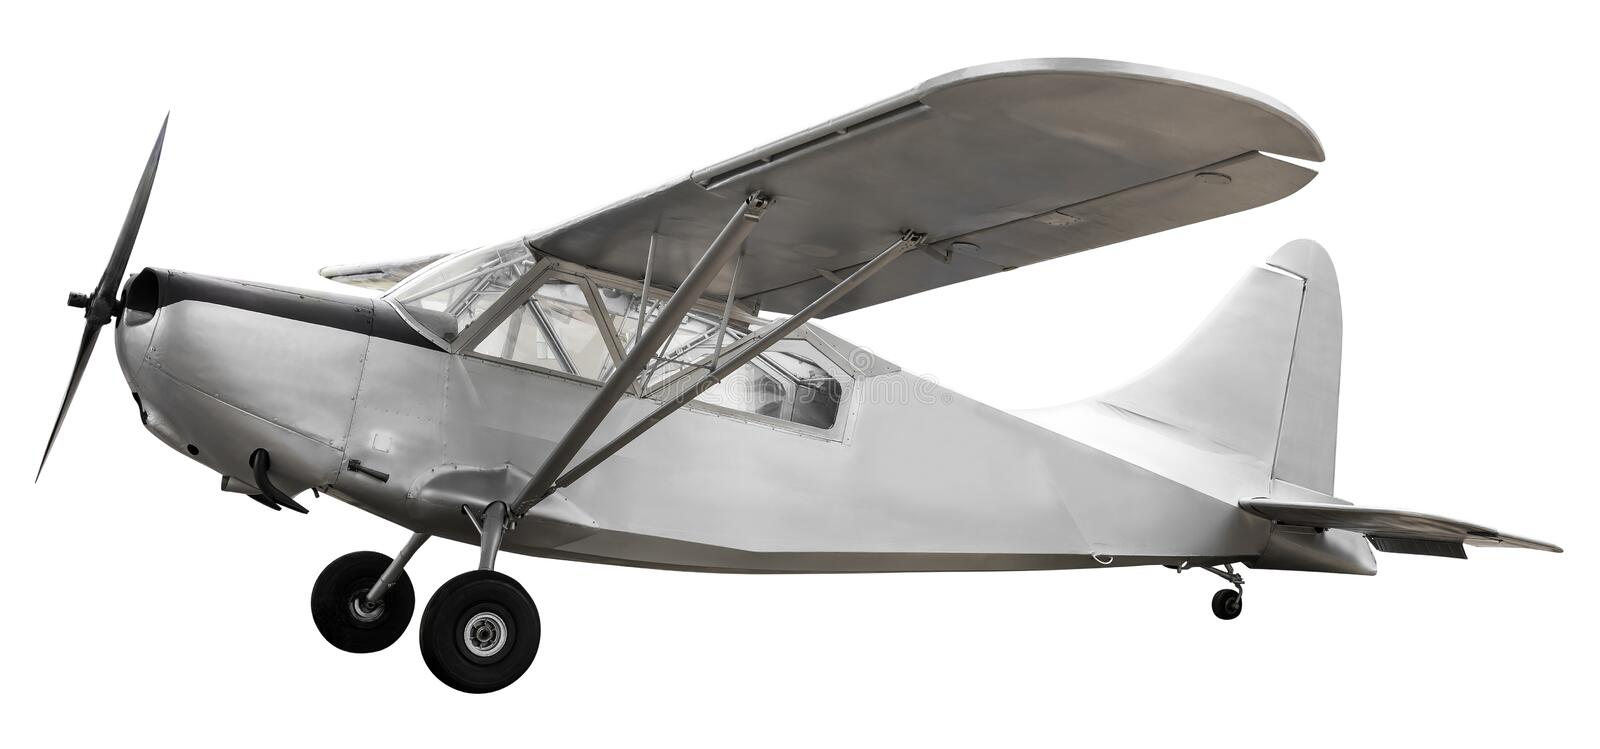 Ancient fight airplane royalty free stock image